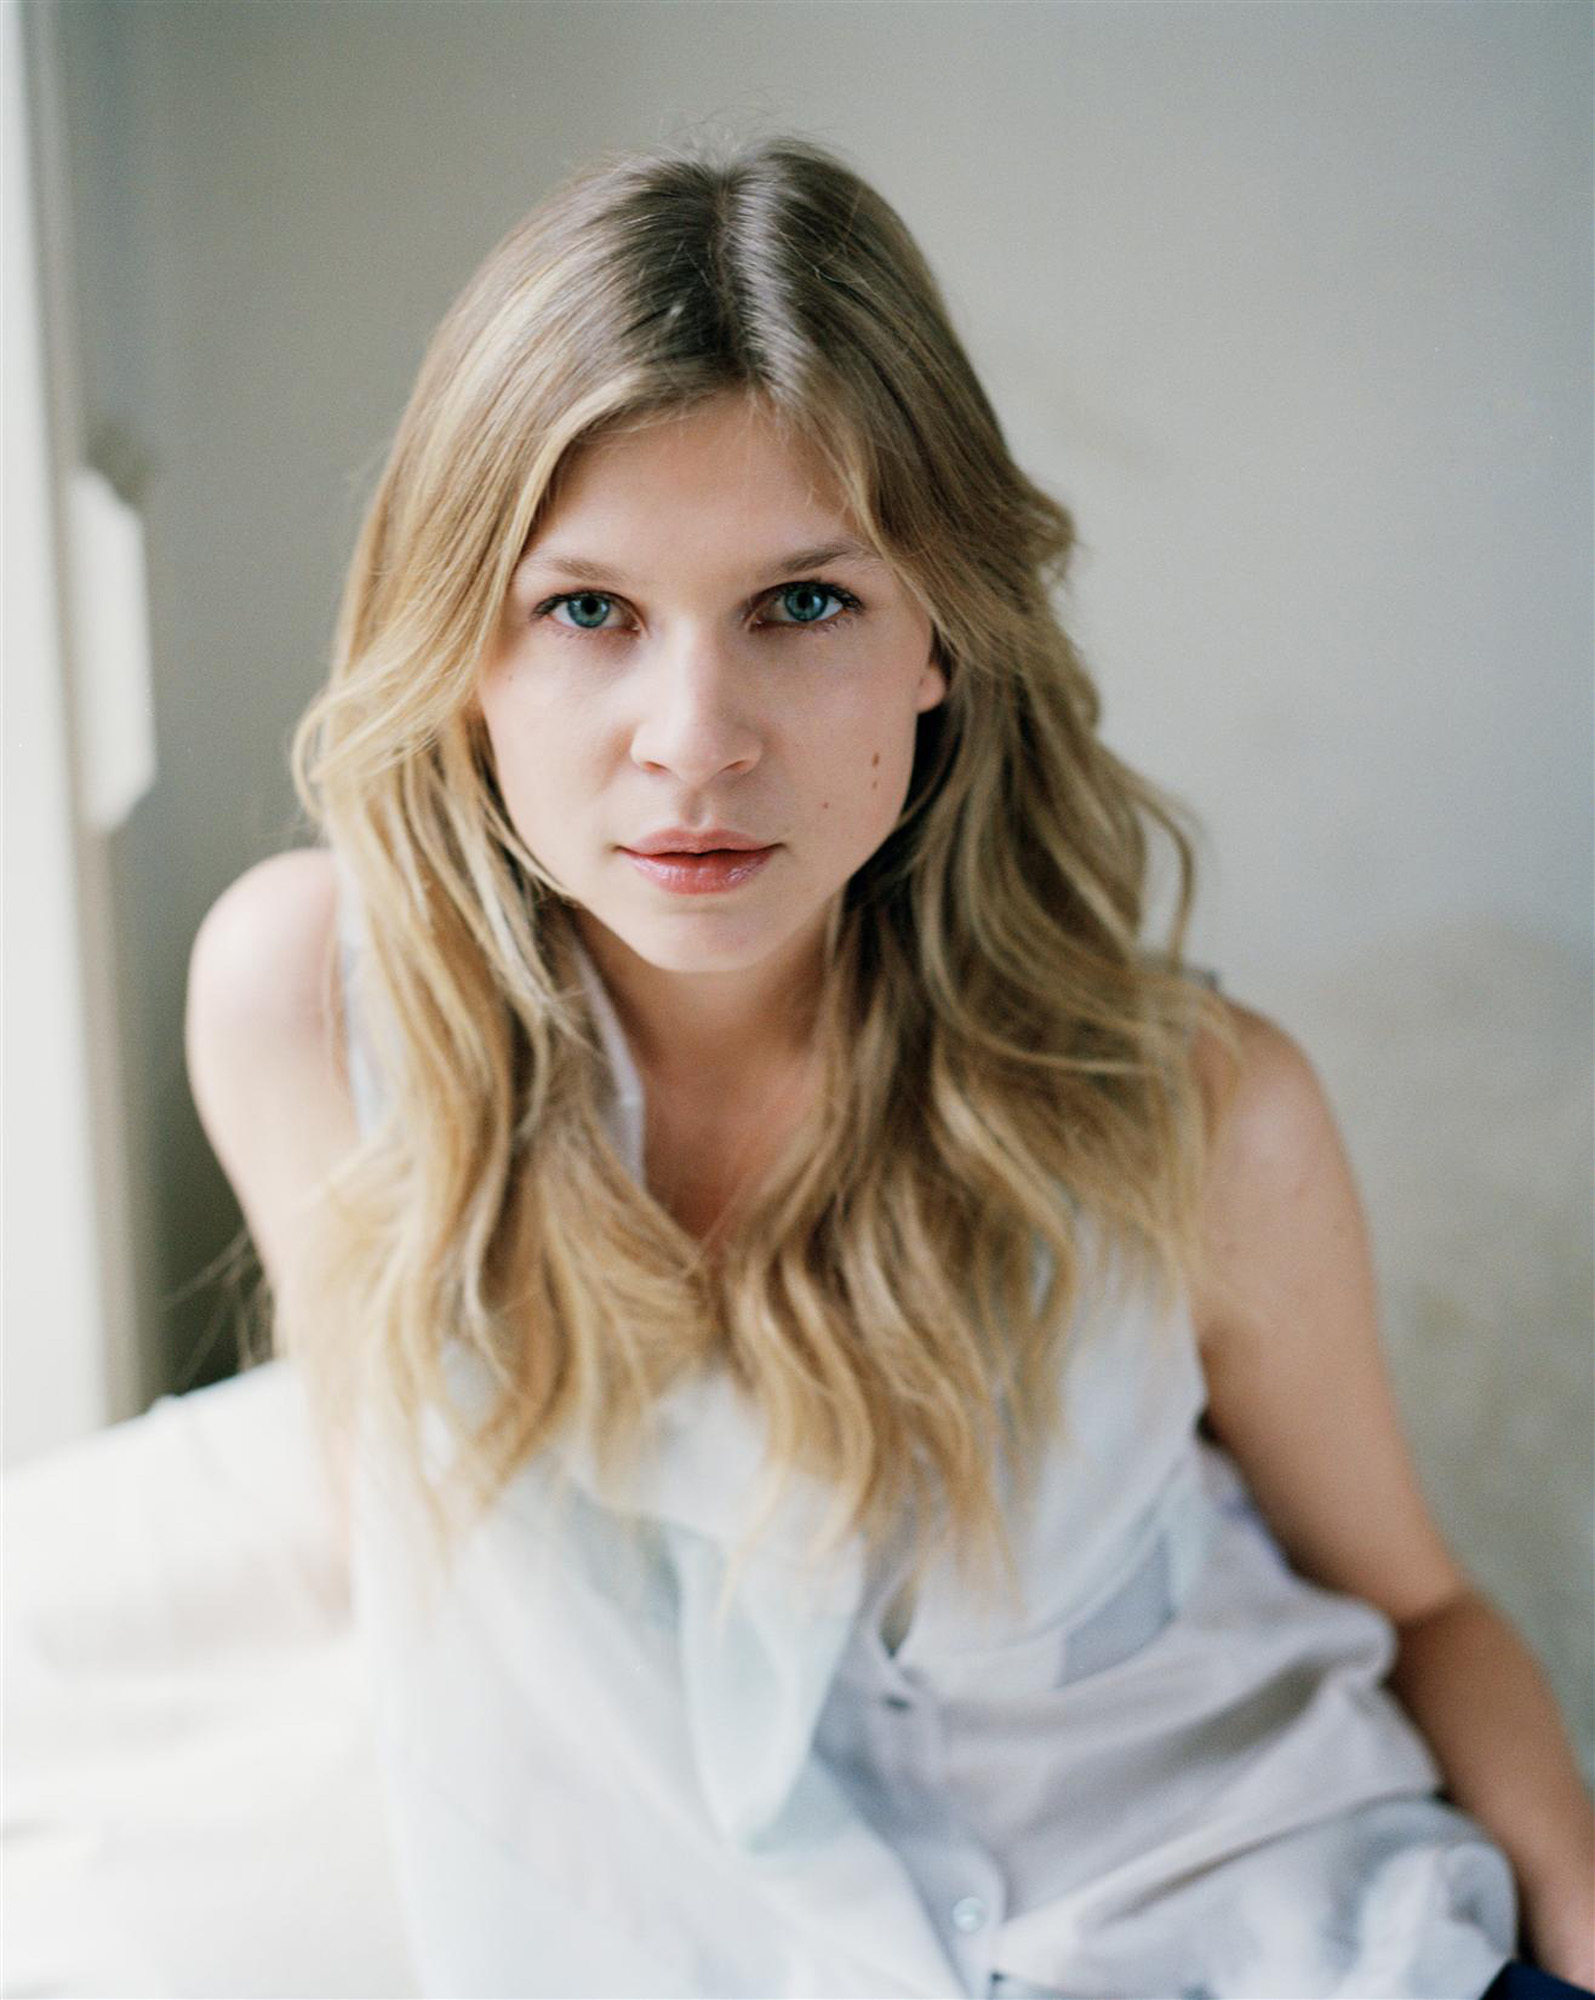 Clemence Poesy Backgrounds on Wallpapers Vista